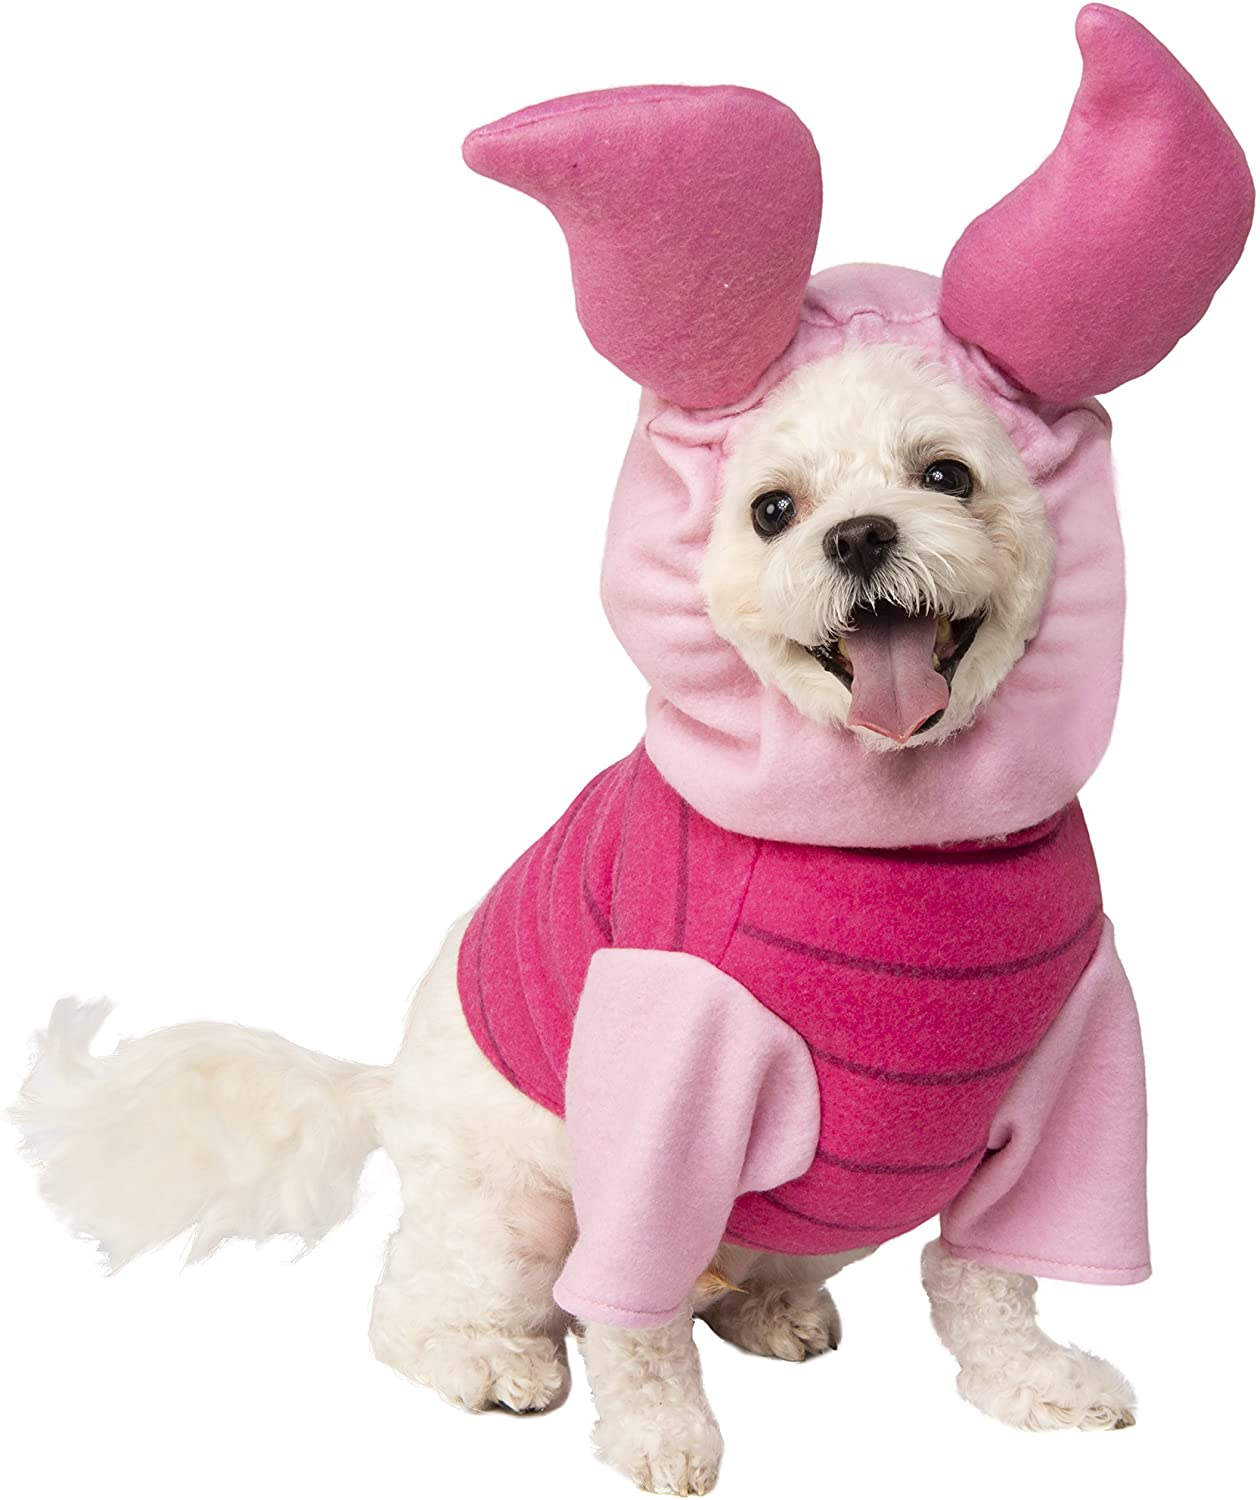 small white dog wearing a pig dog costume